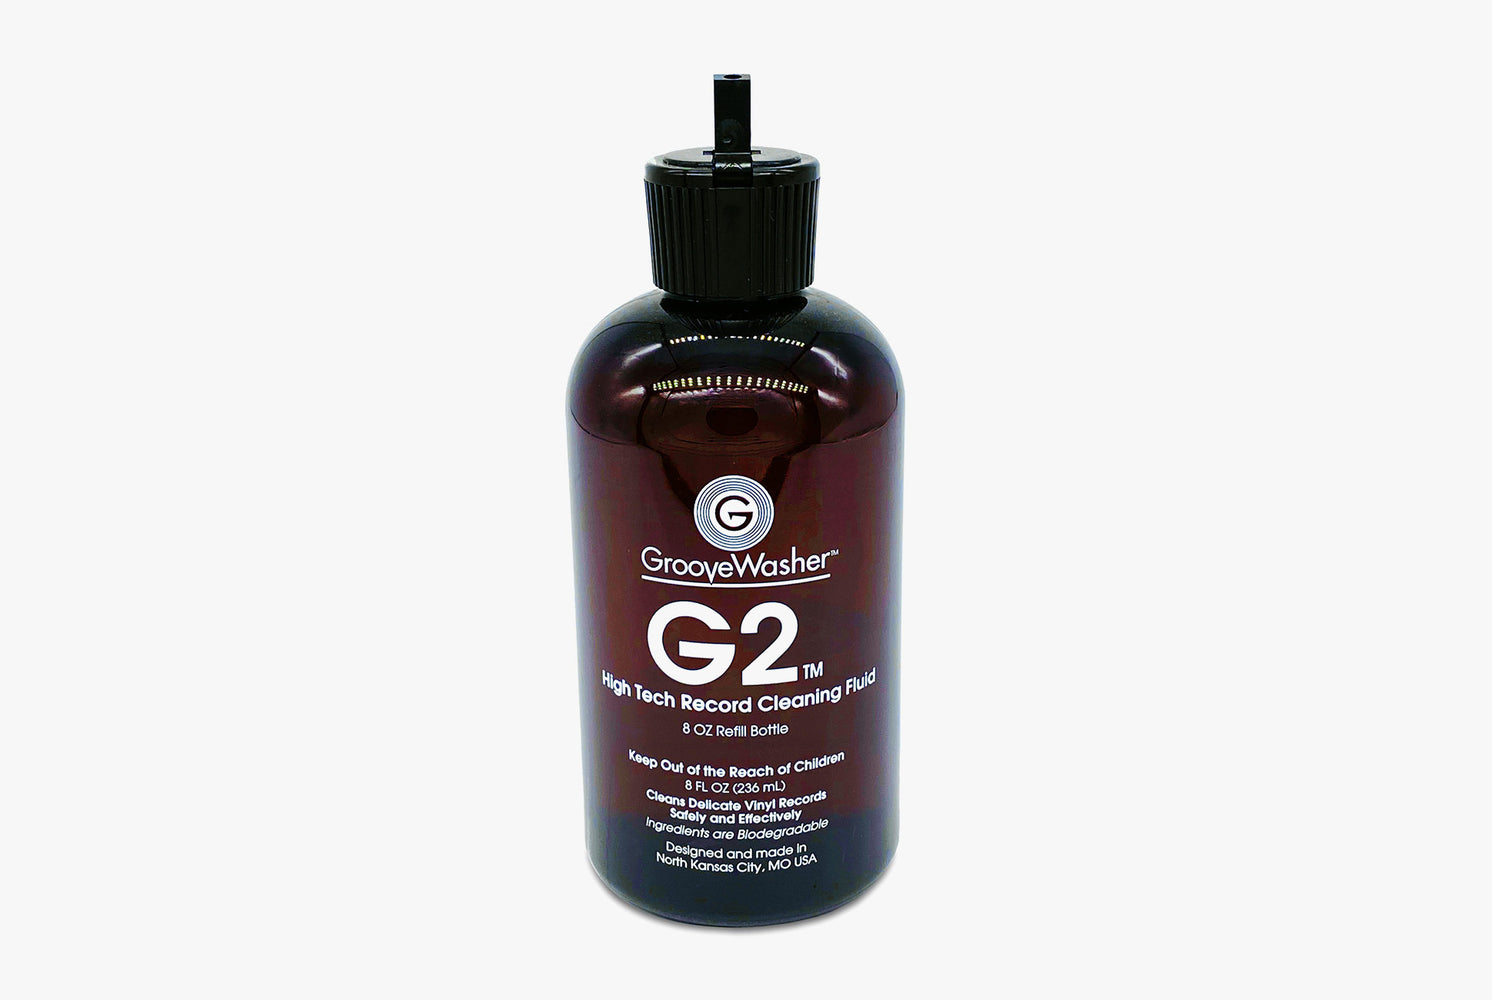 GrooveWasher G2 Fluid 8oz Refill Bottle